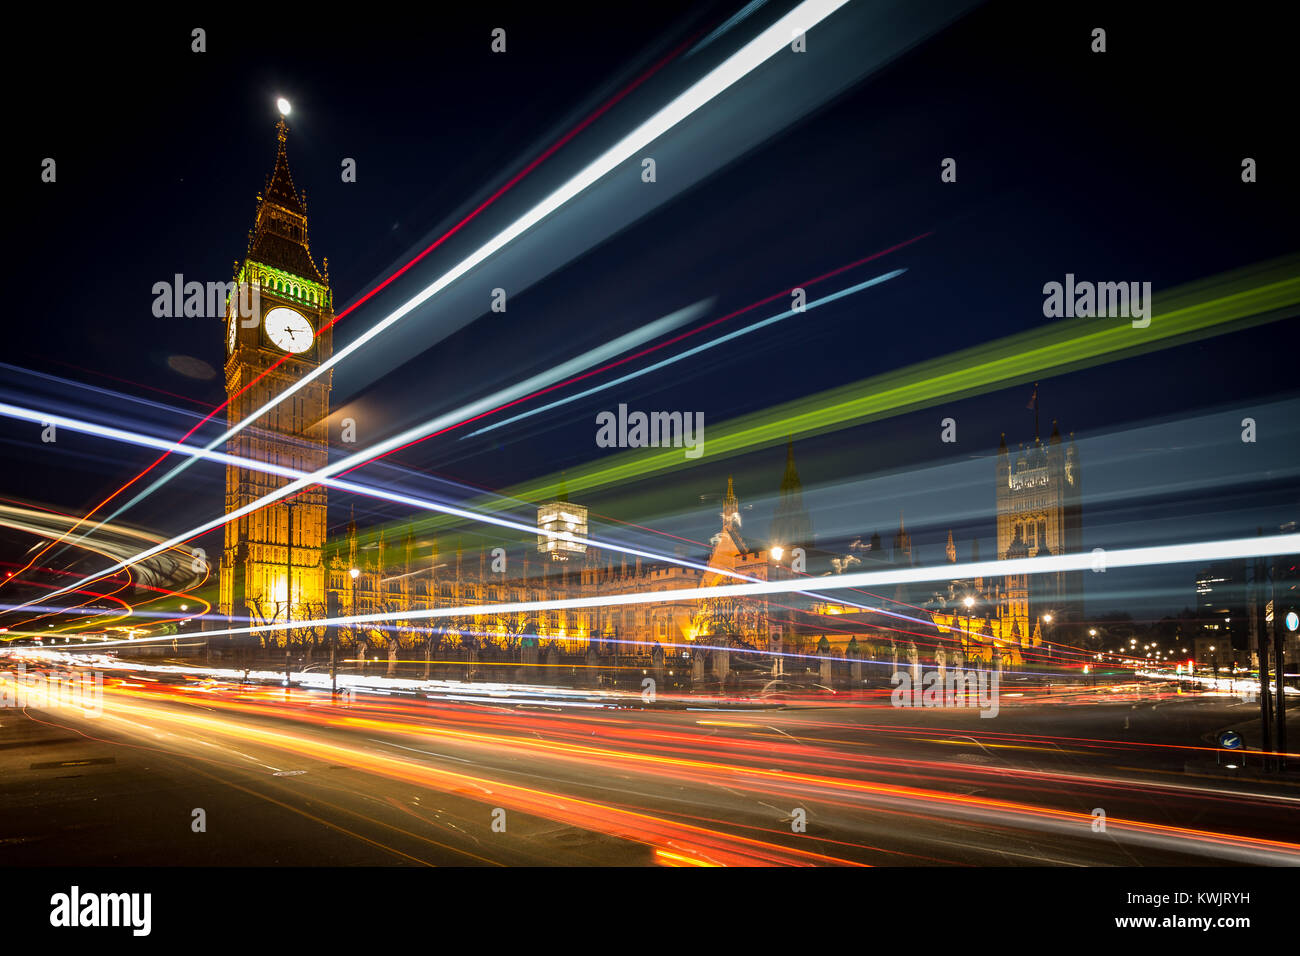 Streaks of light from moving vehicles pass in front of The Houses of Parliament seen from Westminster Sq at dusk - Stock Image